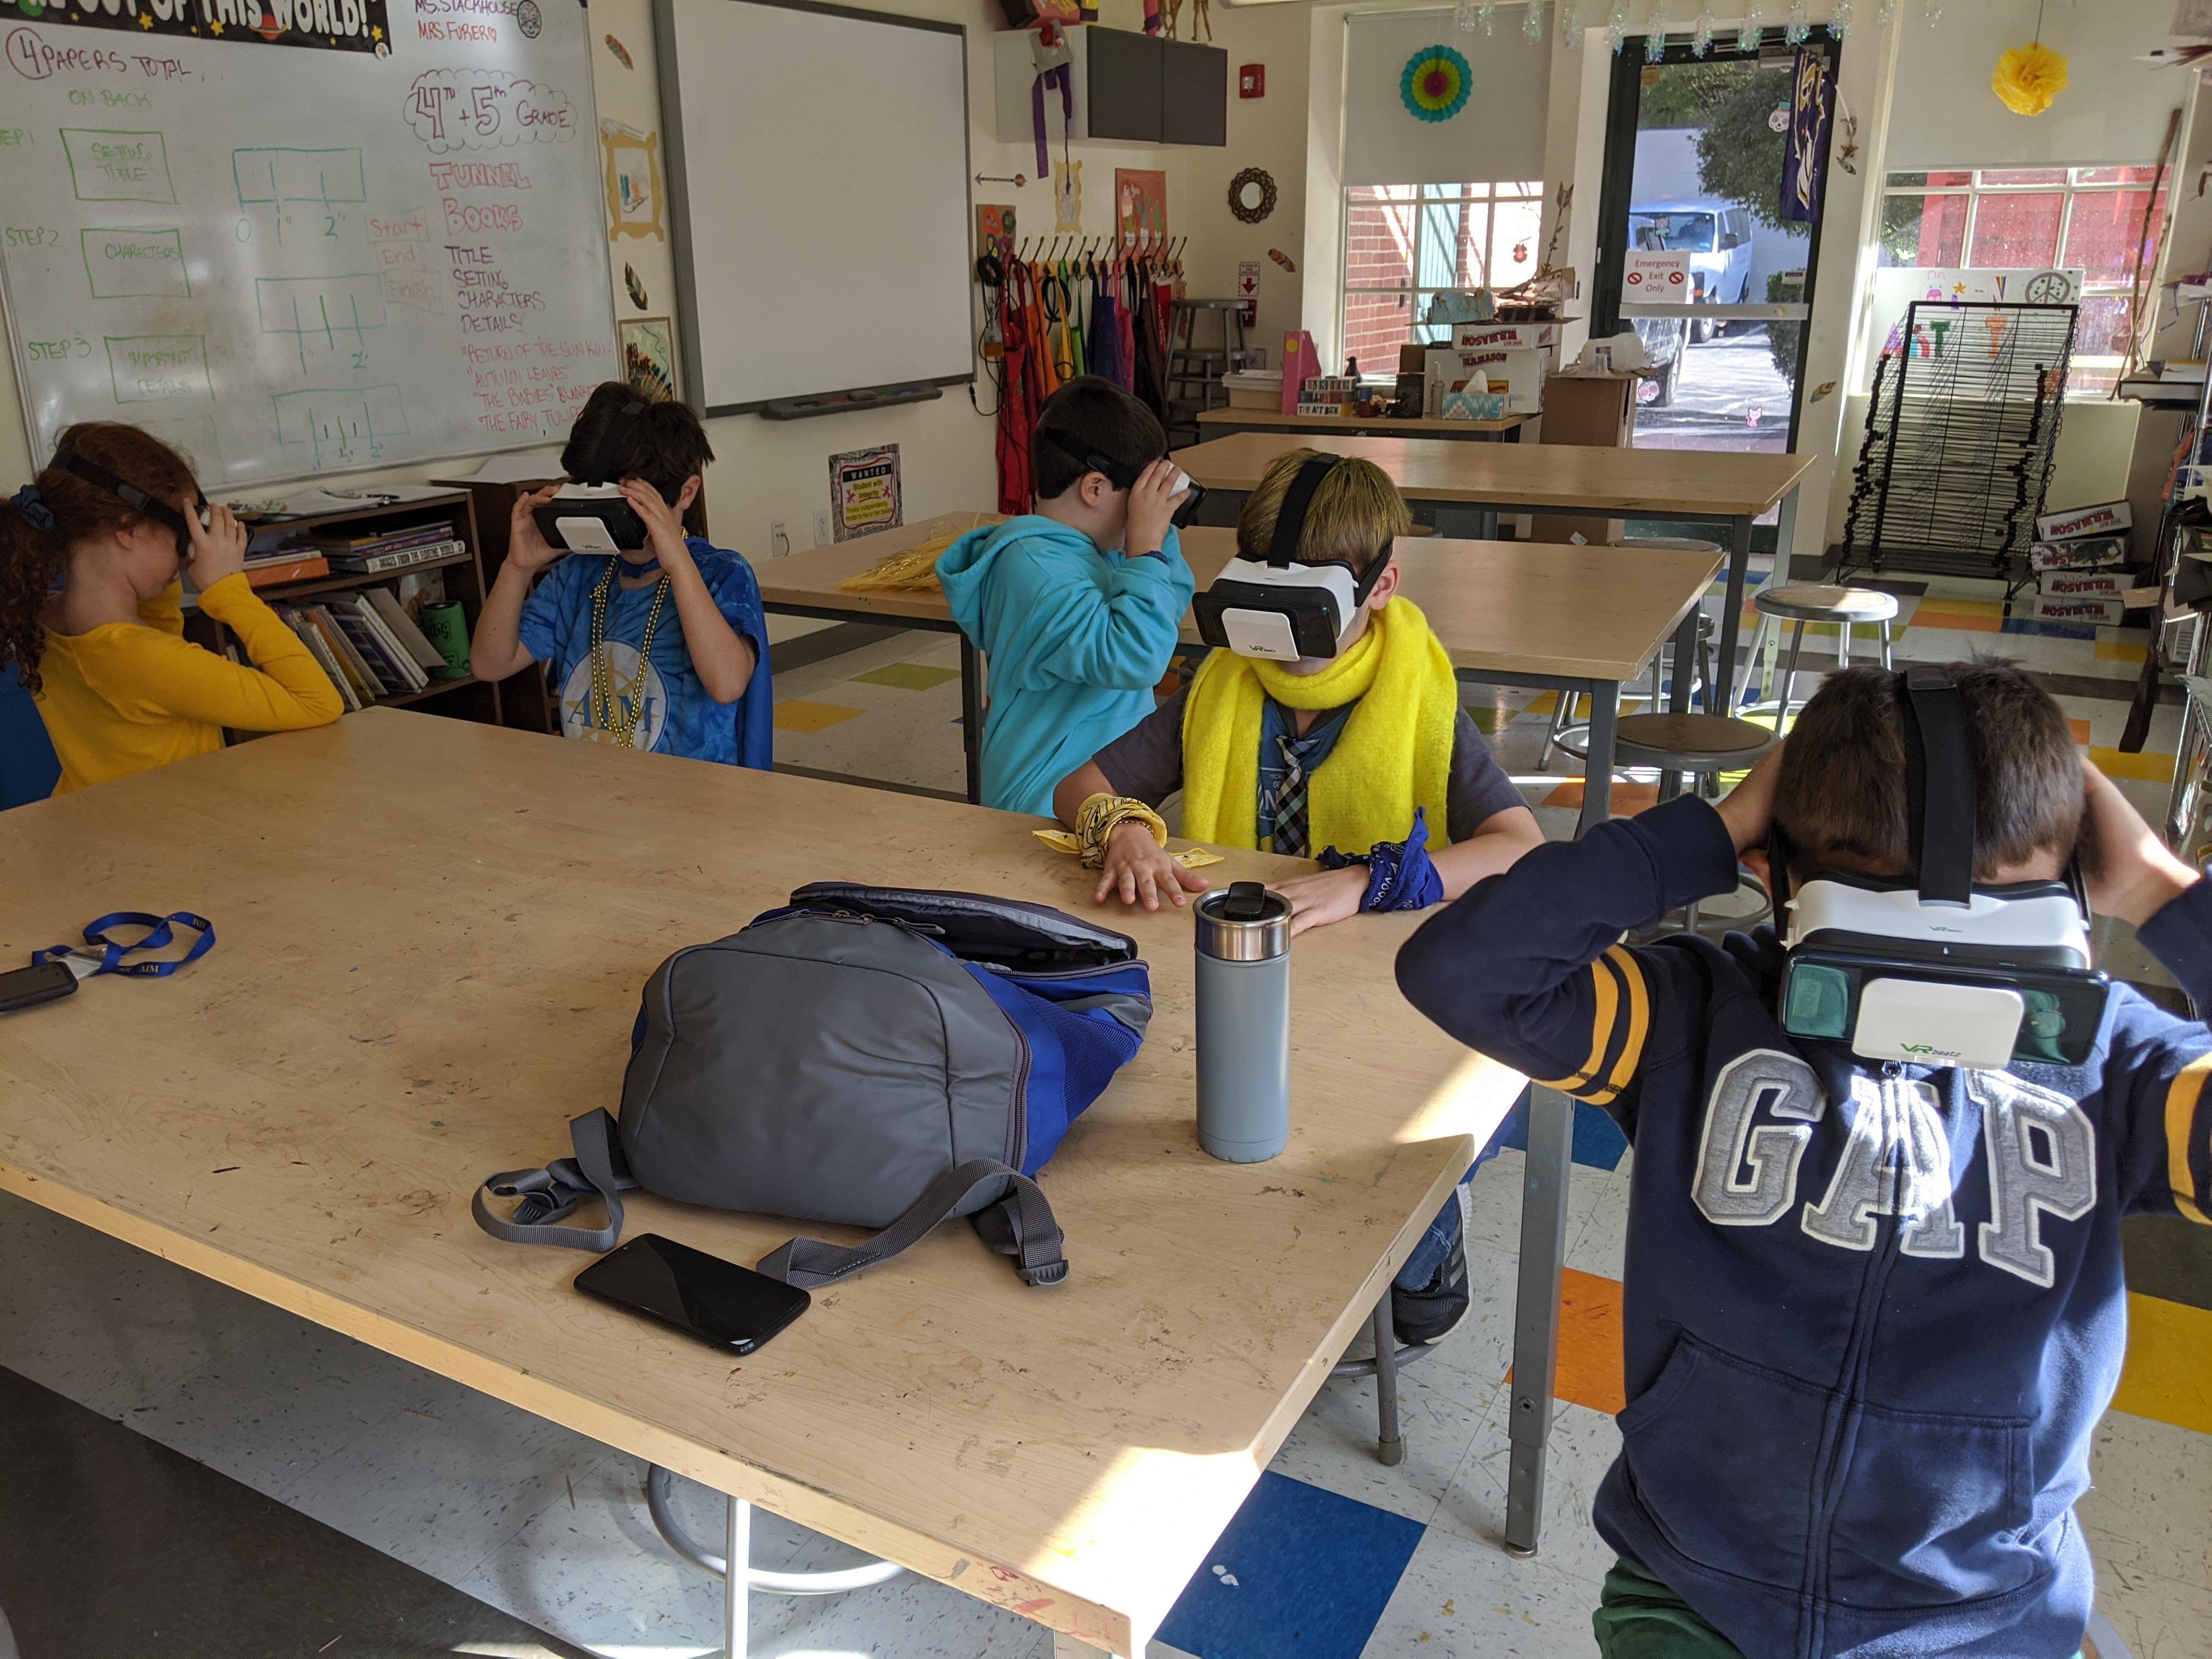 Building Literacy Through Immersive Classrooms Future Ready Developing future ready classroom with